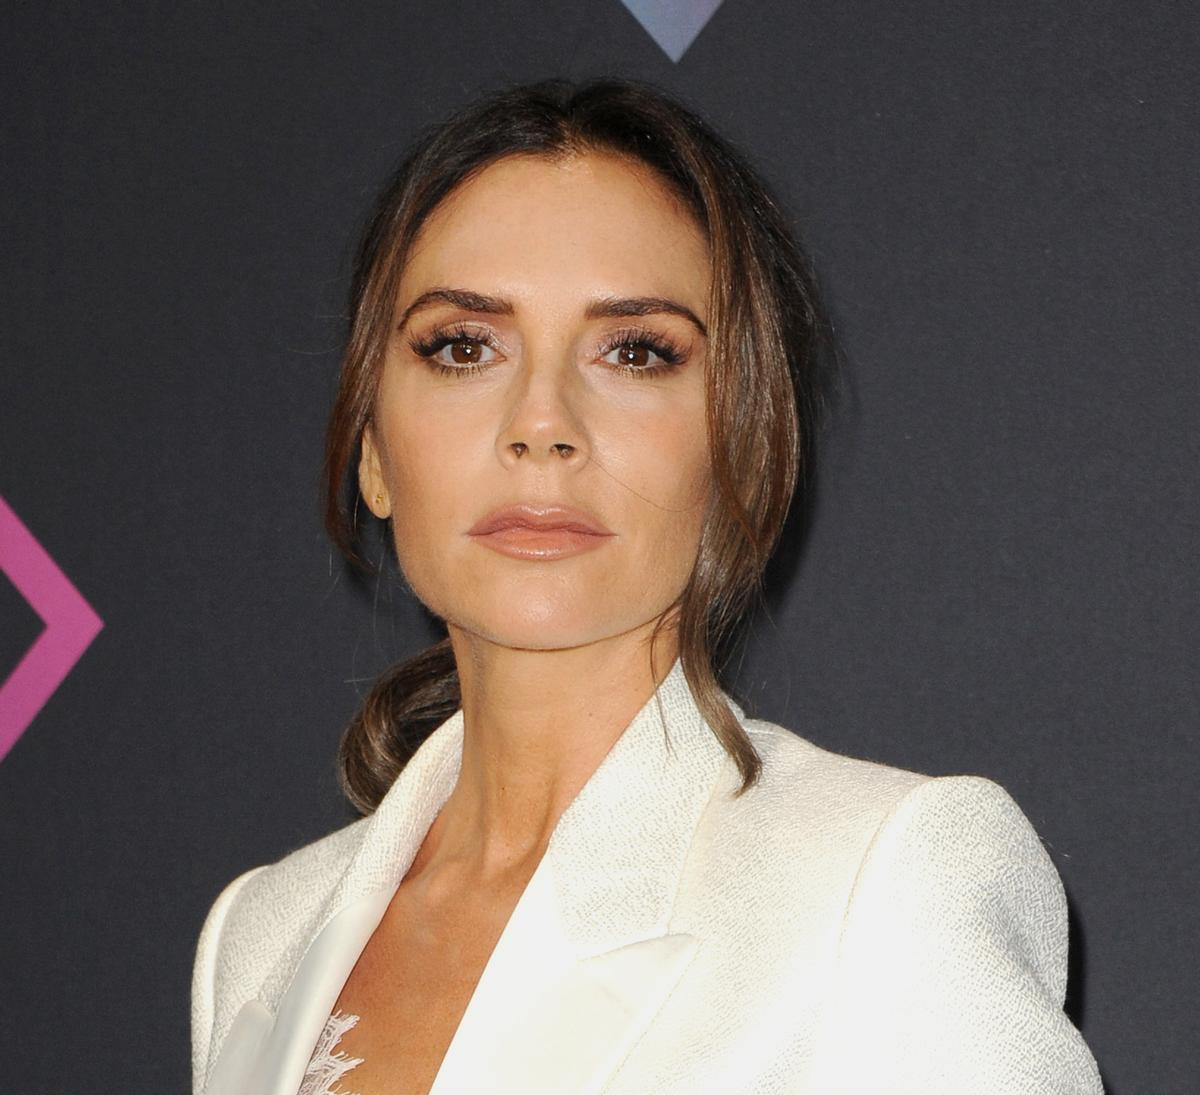 Victoria Beckham has collaborated with German stem-cell biomedical scientist, Prof Augustinus Bader.